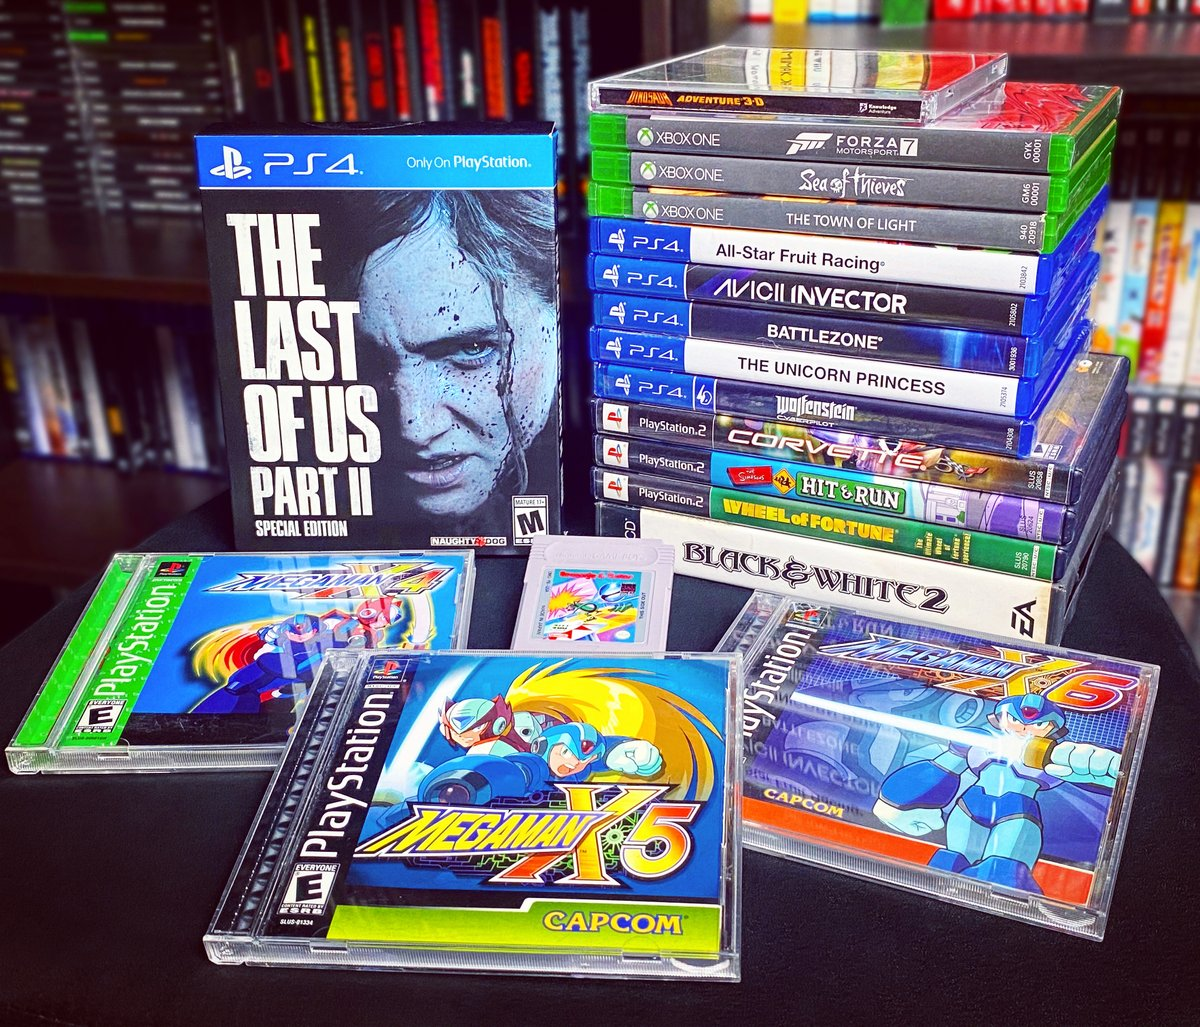 Here are my game pickups/finds for the month of June. Happy 4th everyone!  #retro #retrocollective #retrogaming #retrocollector #retrogames #videogames #gaming #ps1 #games #gamer #nostalgia #gamecollector #playstation #MegaMan #megamanx #gameboy #thelastofus2 #tlou2 #aviciipic.twitter.com/zZjpaer51G